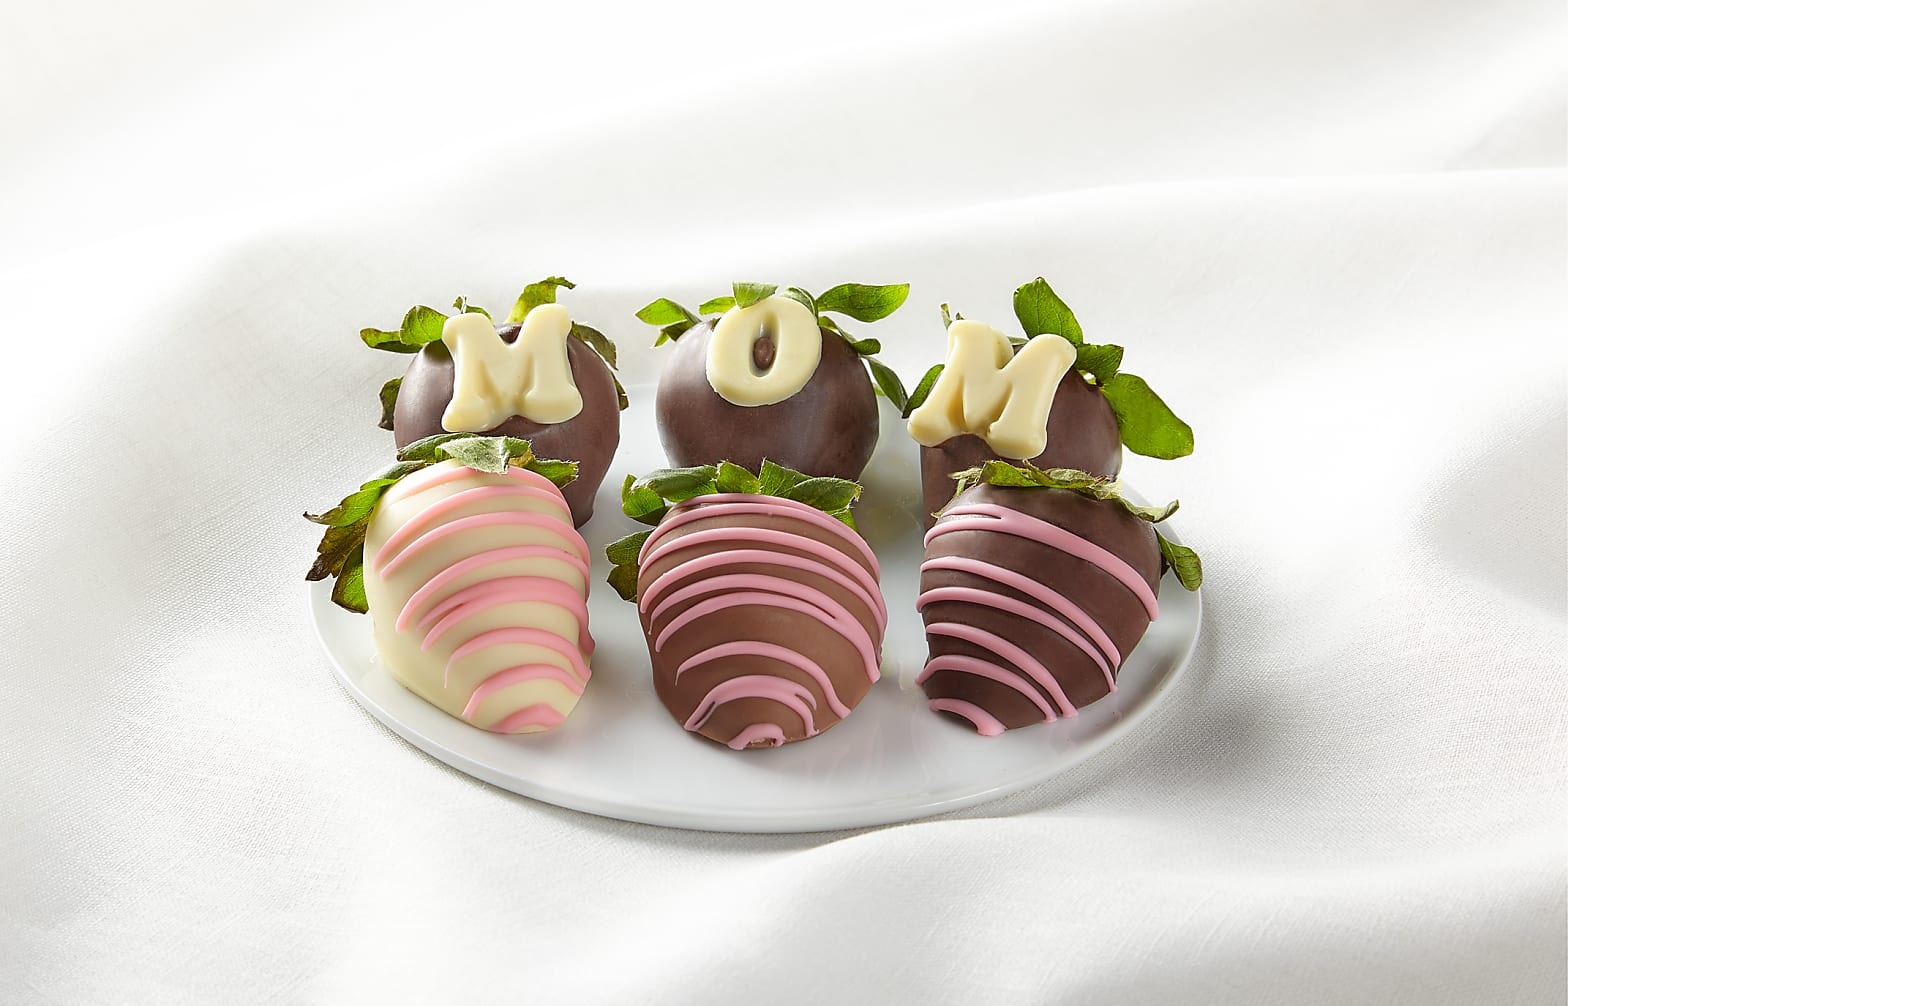 Mother's Day Belgian Chocolate Covered Strawberries - Image 1 Of 2